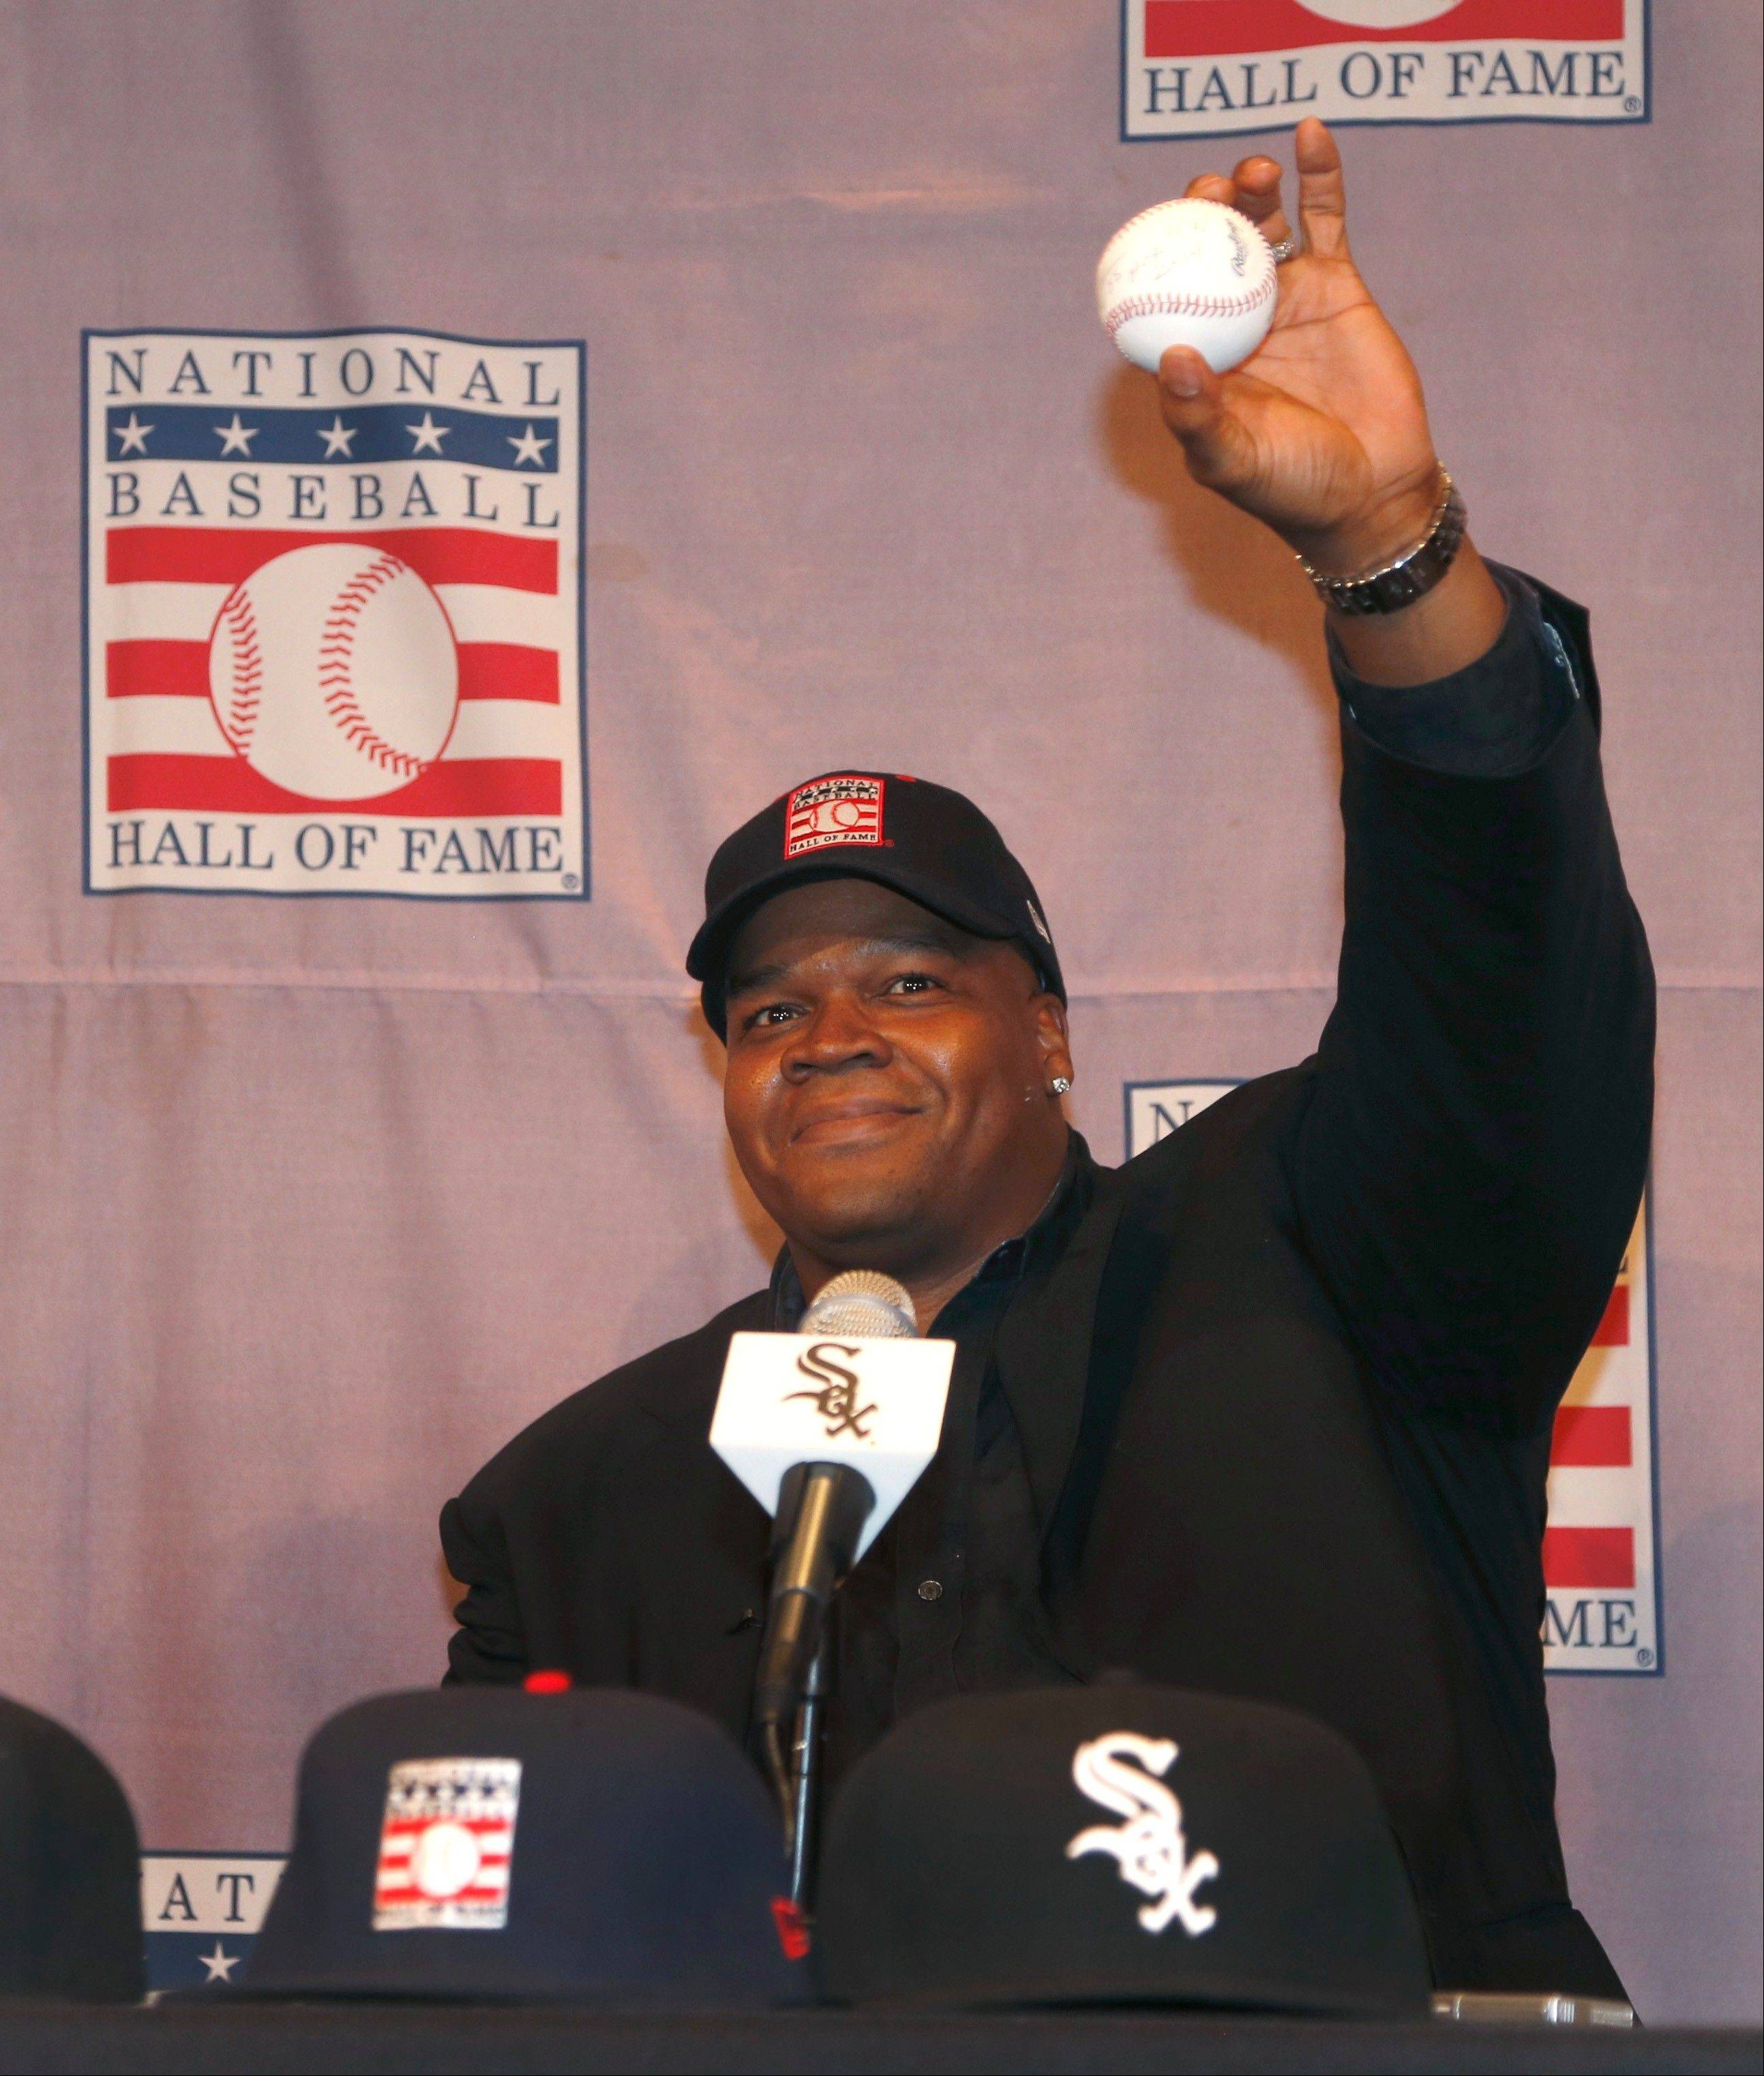 Frank Thomas holds up a baseball he signed �Frank Thomas HOF� during a news conference Wednesday to discuss the announcement of his selection as a first-ballot Hall of Famer.